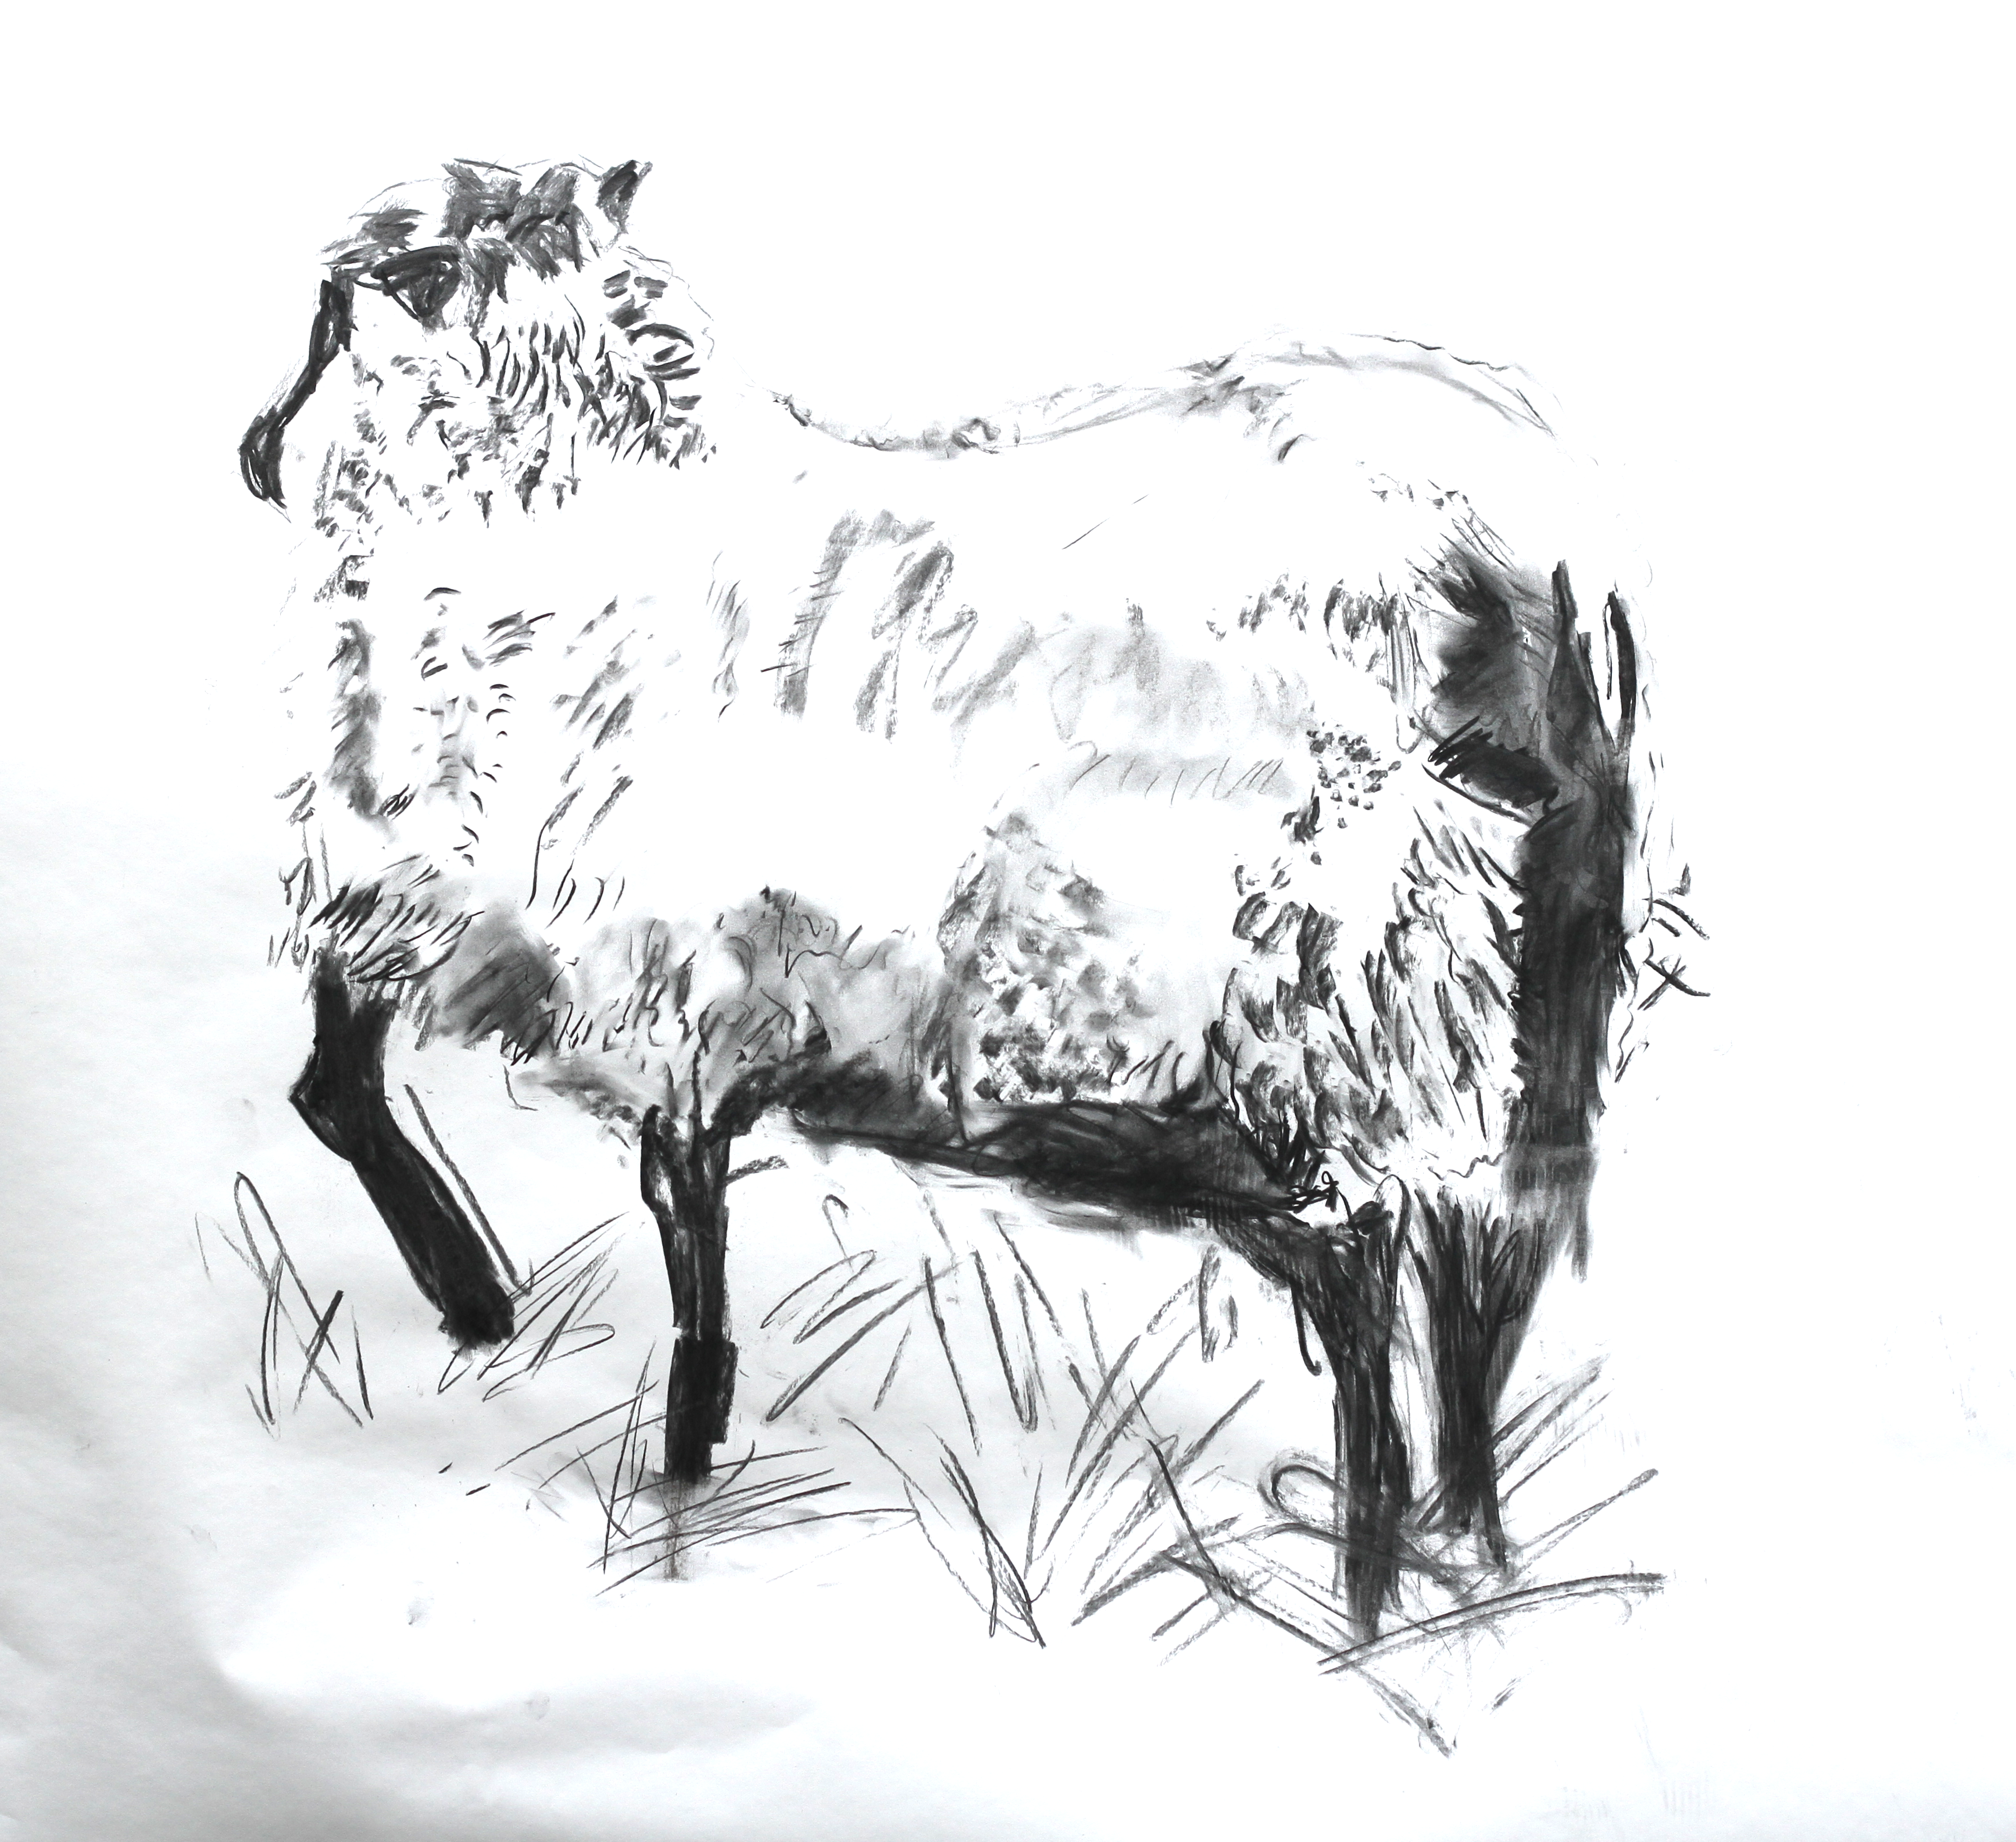 A charcoal sketch of a sheep with its rear turned toward the viewer. Its head looks deeper into the paper, looking the same way that we are looking, so we can only see the back of the head and the ears. Its wooly back is drawn with quick, sparse charcoal marks; darker areas are drawn at the rear and under the belly. The sheep is drawn standing on three legs; the fourth (the front-left) is held up delicately as if injured.